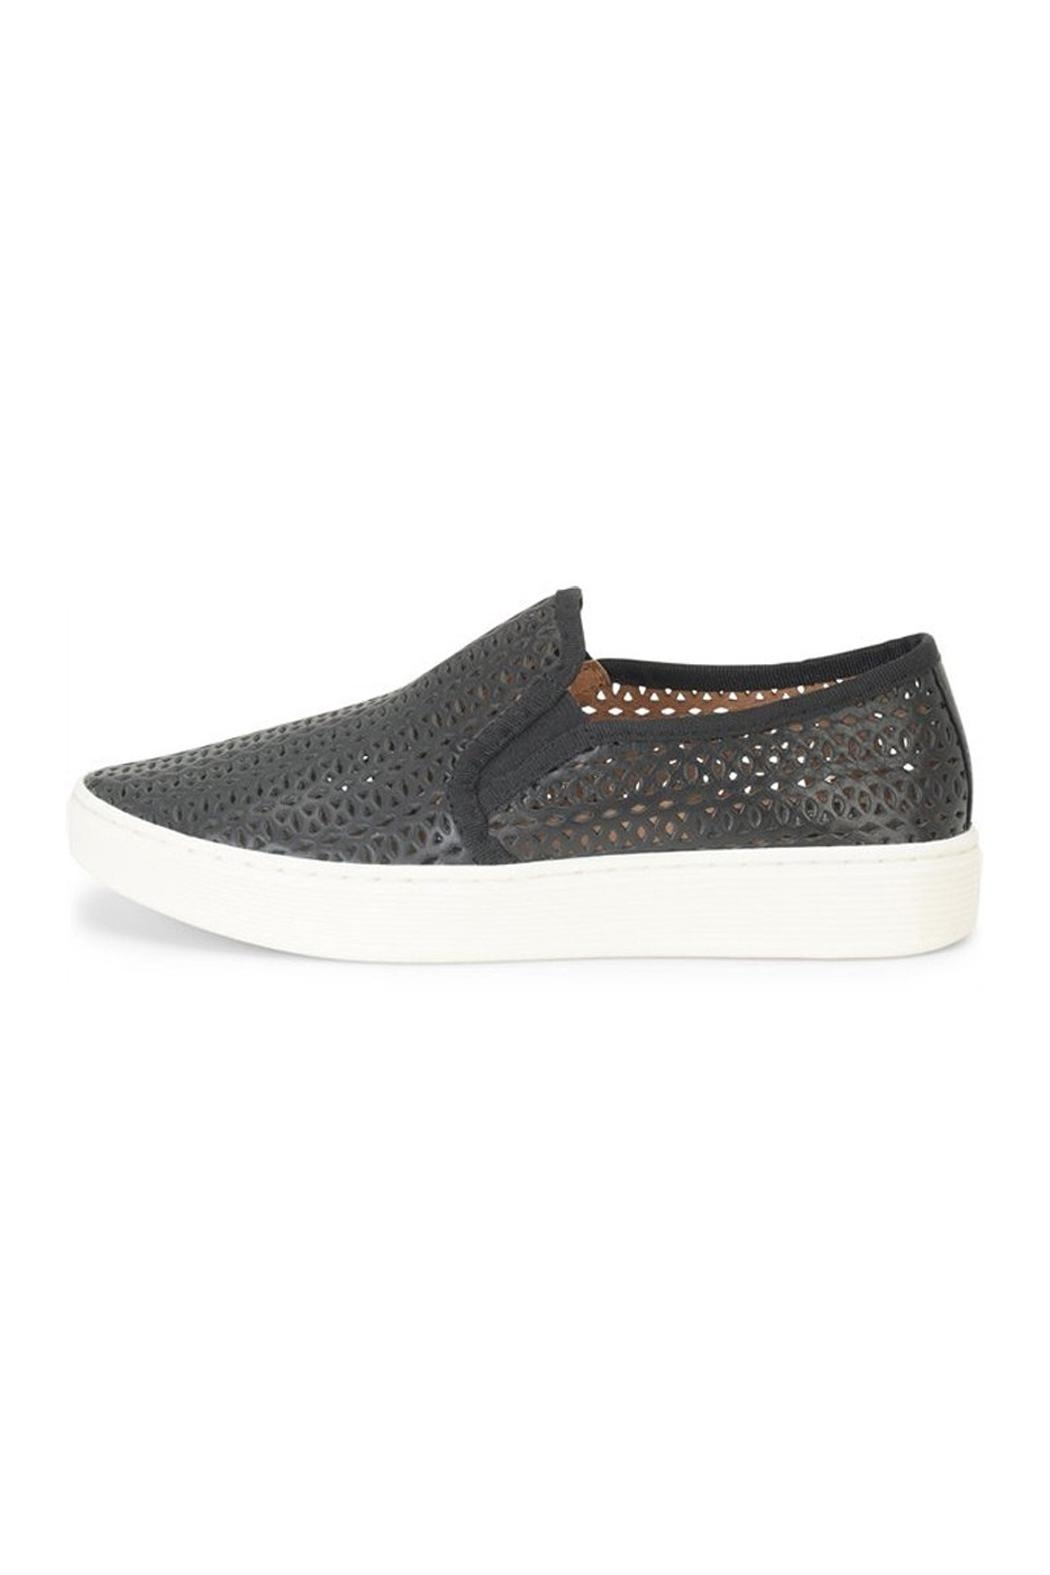 Sofft Black Perforated Sneaker - Main Image